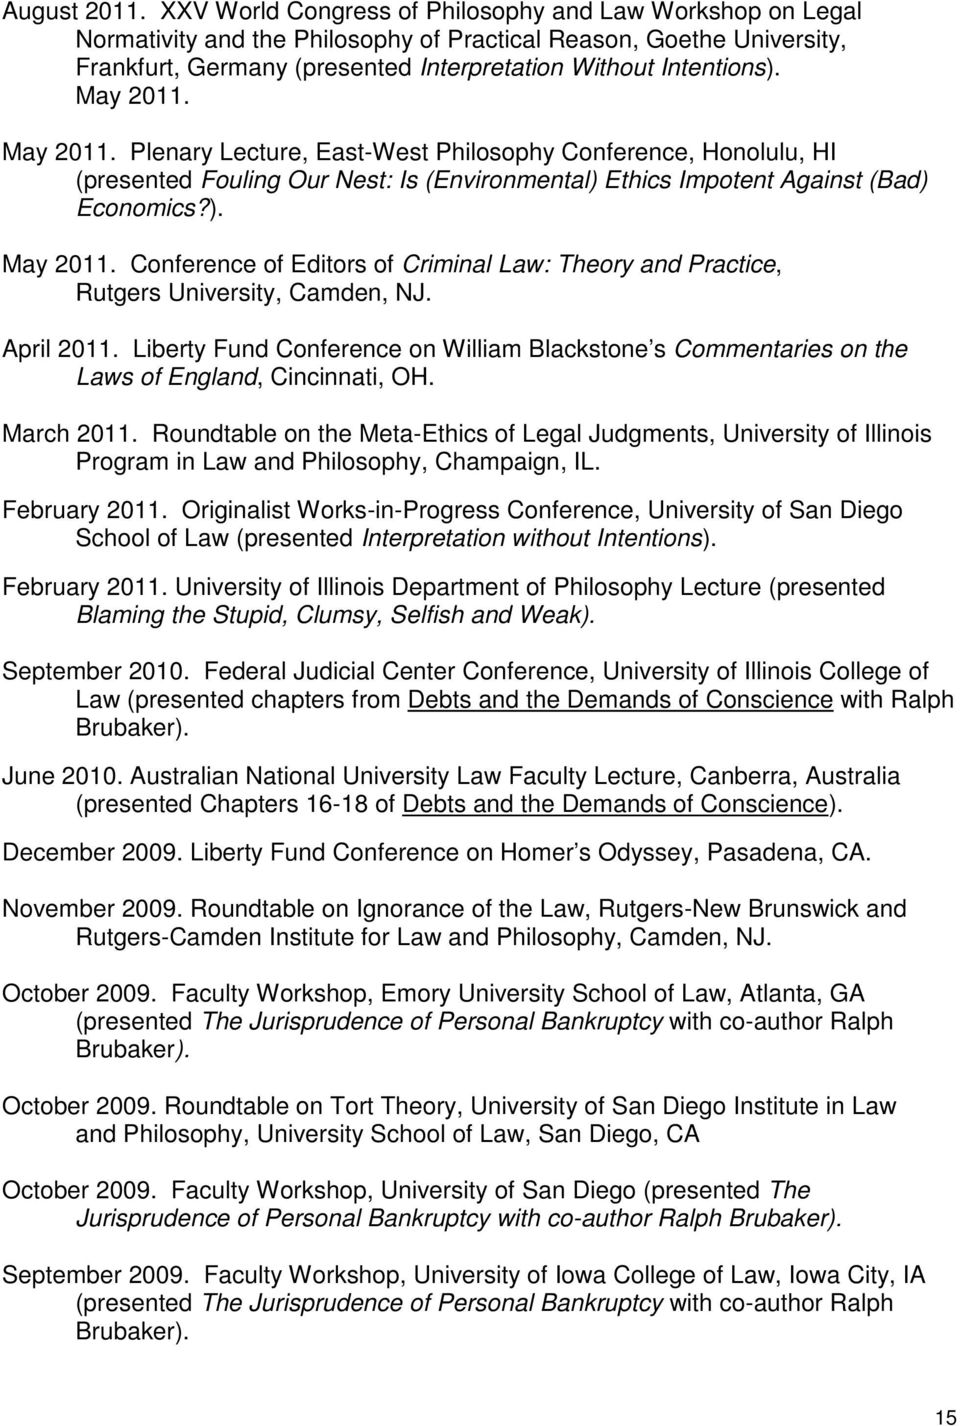 May 2011. May 2011. Plenary Lecture, East-West Philosophy Conference, Honolulu, HI (presented Fouling Our Nest: Is (Environmental) Ethics Impotent Against (Bad) Economics?). May 2011. Conference of Editors of Criminal Law: Theory and Practice, Rutgers University, Camden, NJ.